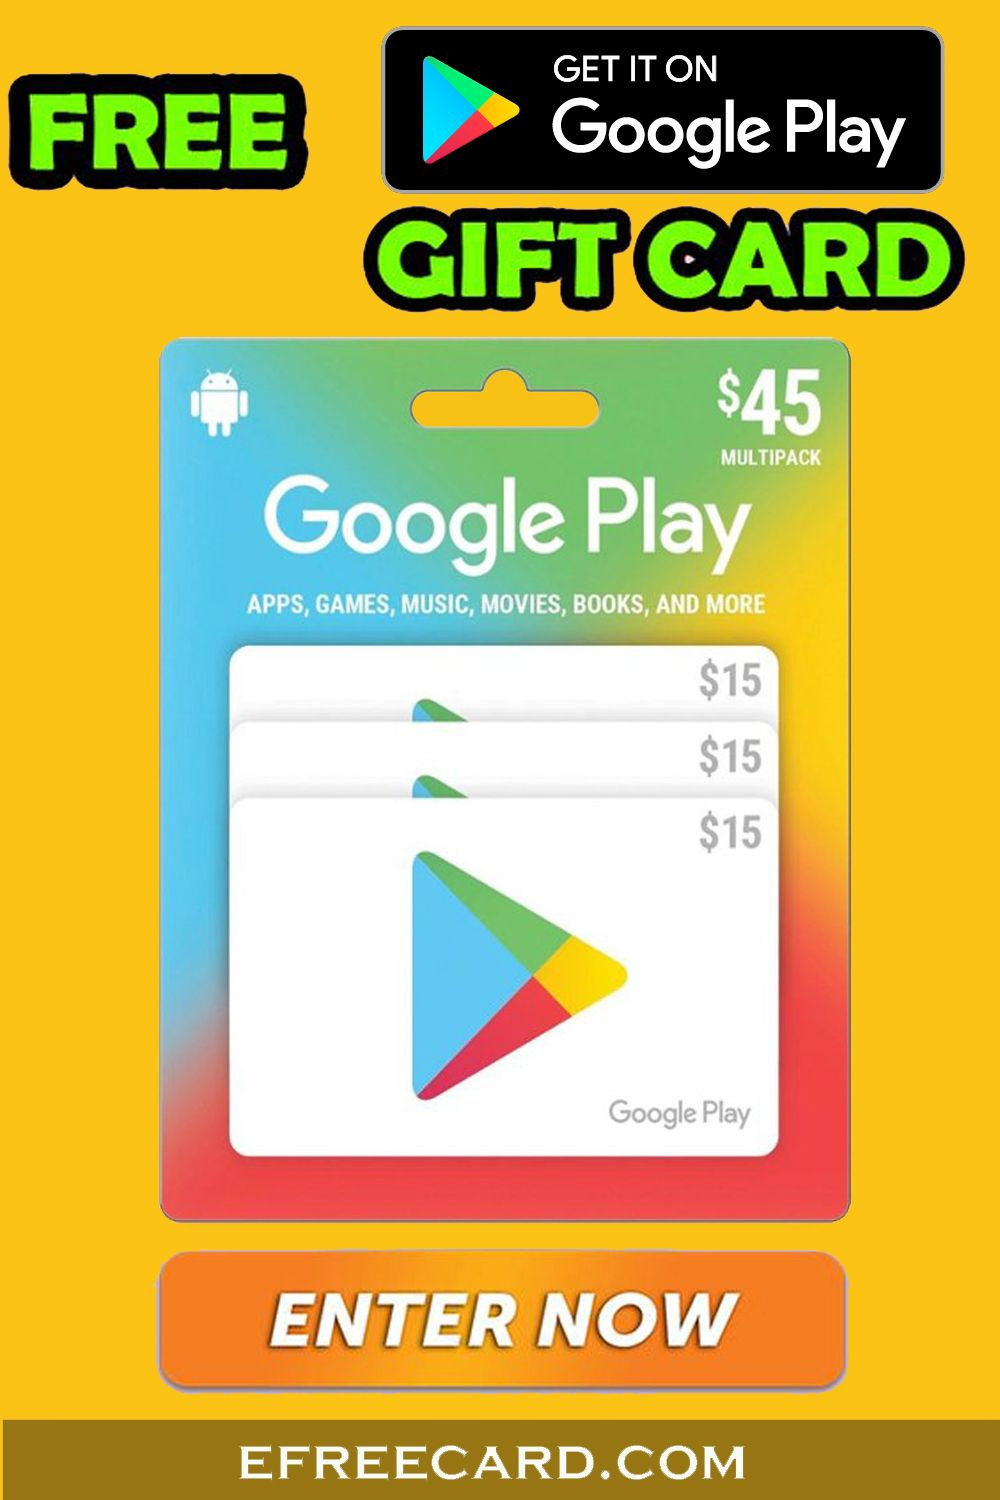 How To Get Redeem Code For Google Playstore 2020 Google Play Gift Card Amazon Gift Card Free Free Gift Card Generator